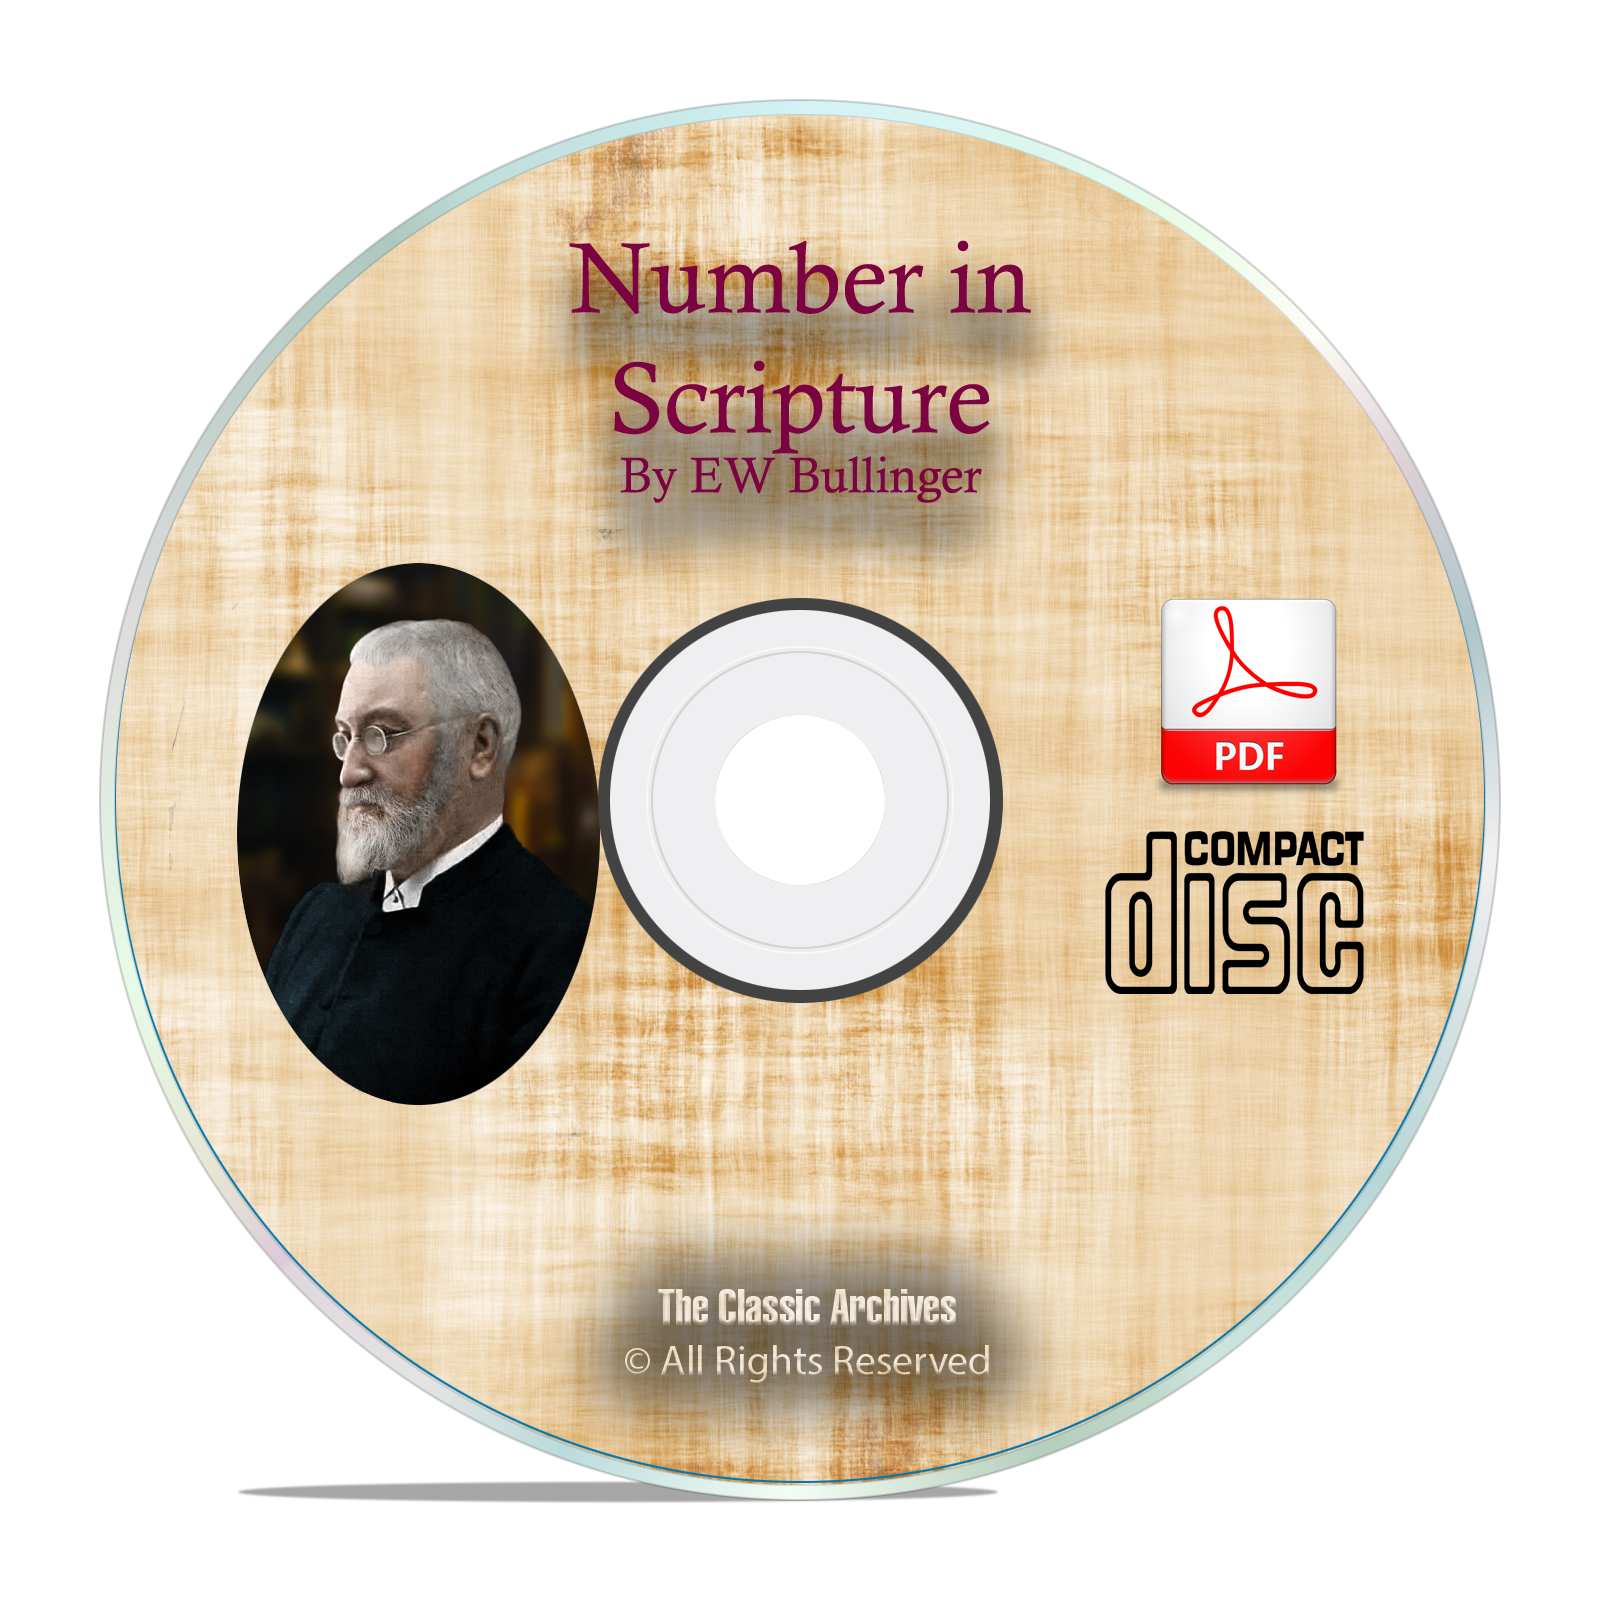 Number in Scripture, by E W Bullinger, Bible Commentary Christian PDF CD